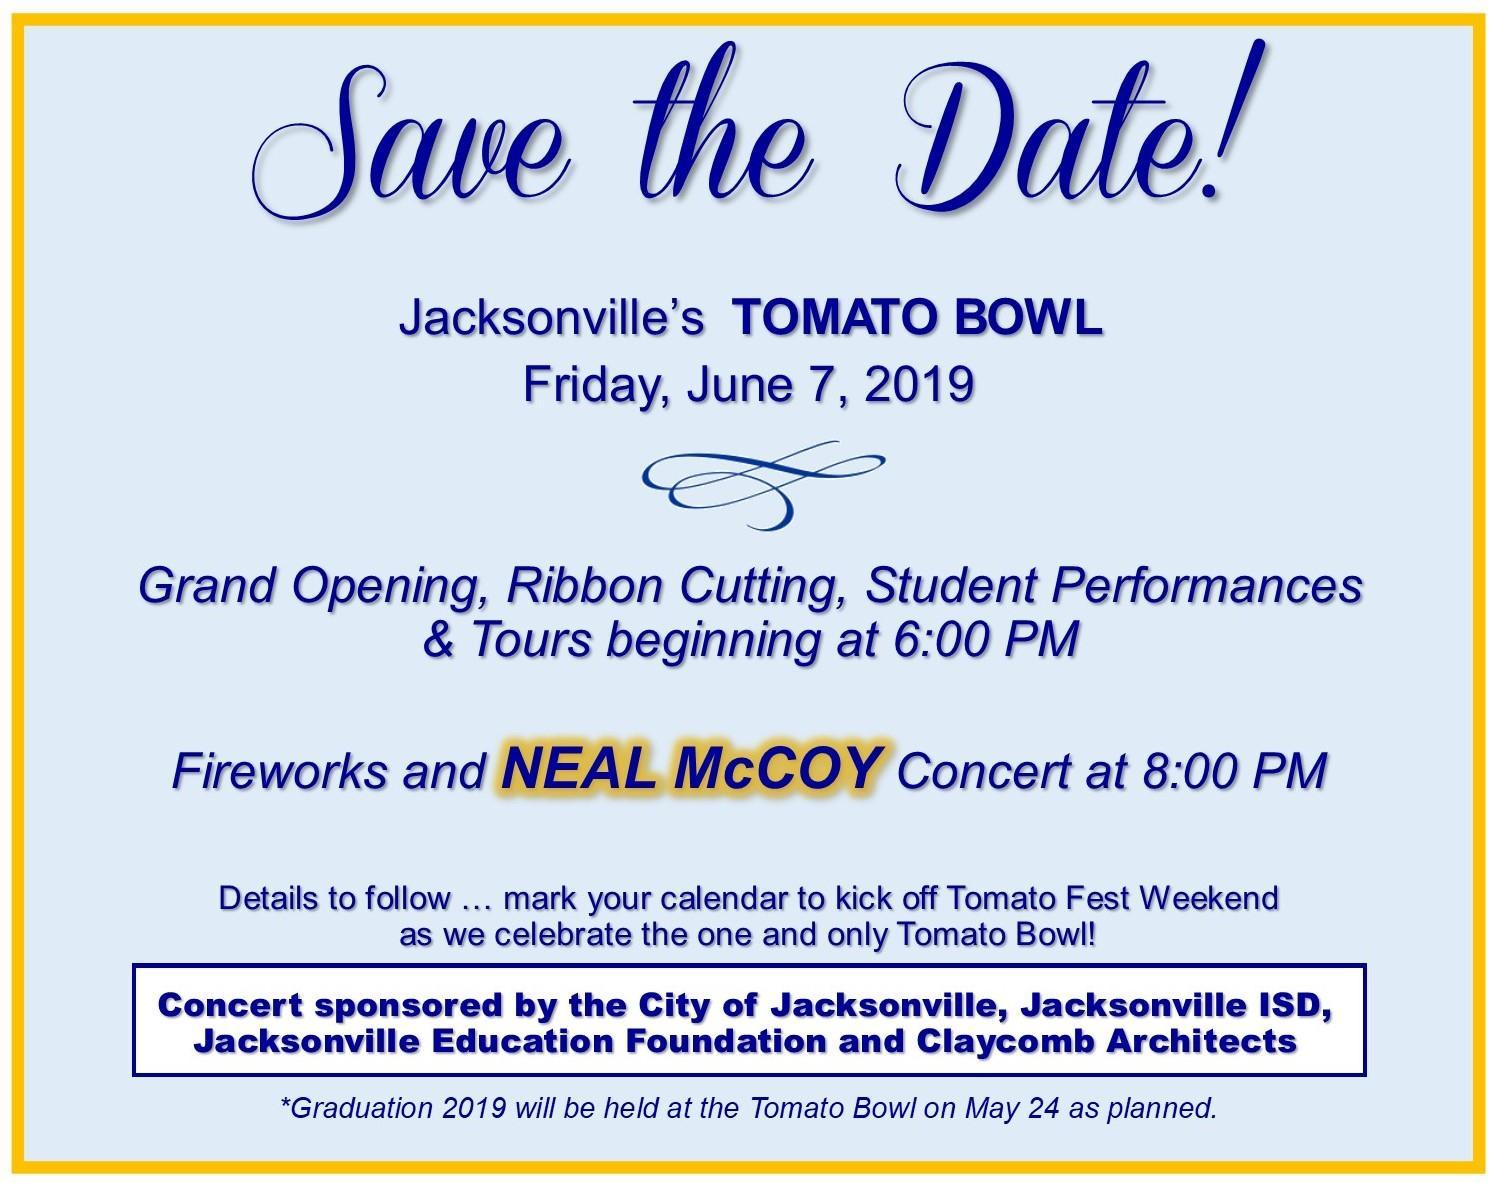 Save the Date card for the Tomato Bowl Grand Opening on June 7